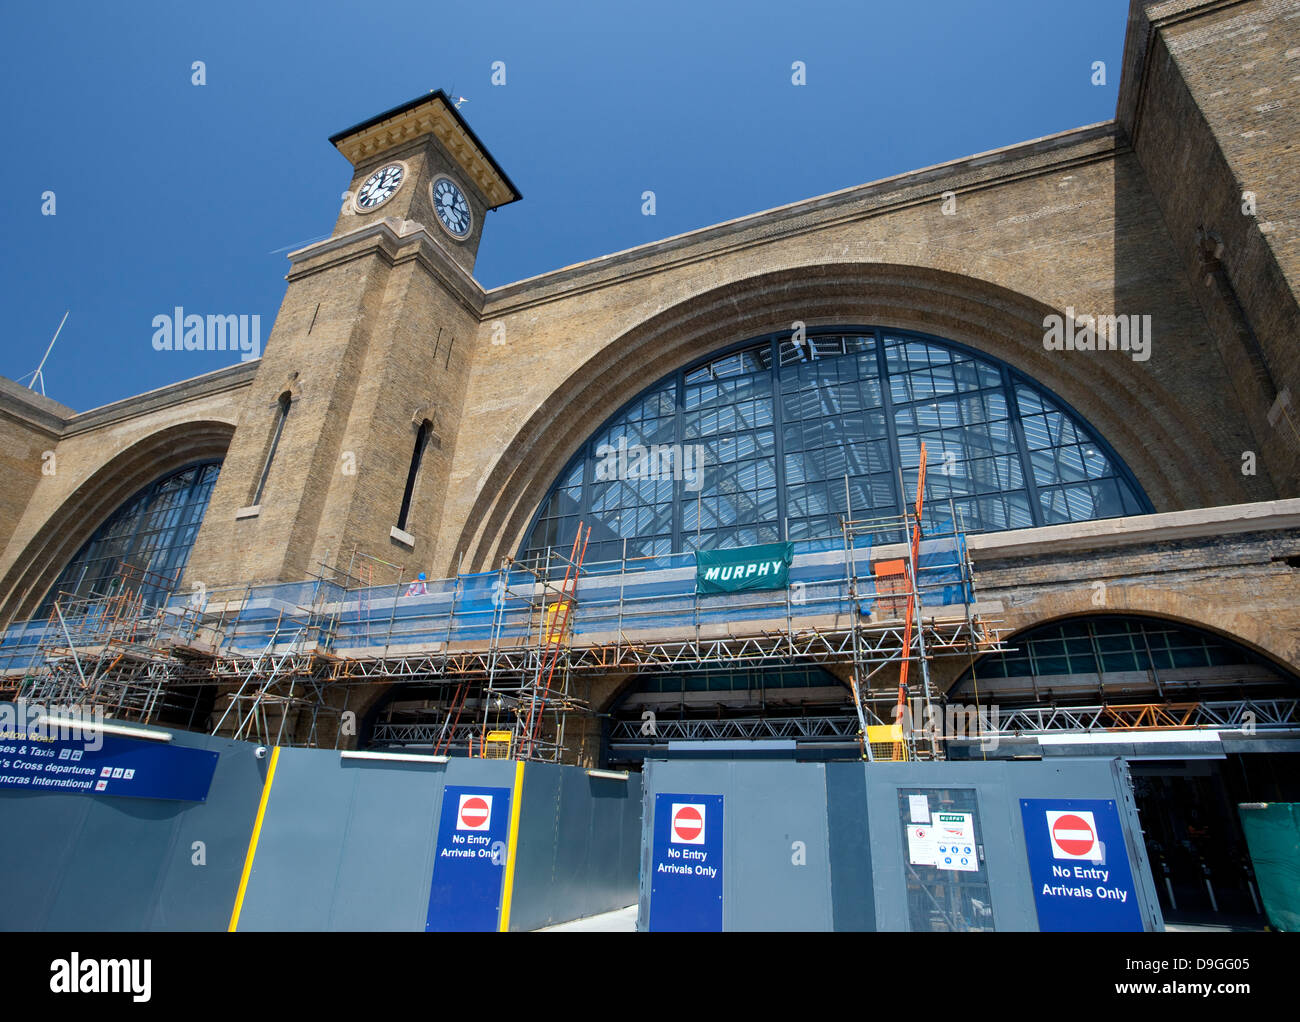 Construction work to restore original facade of Kings Cross Station, London - Stock Image